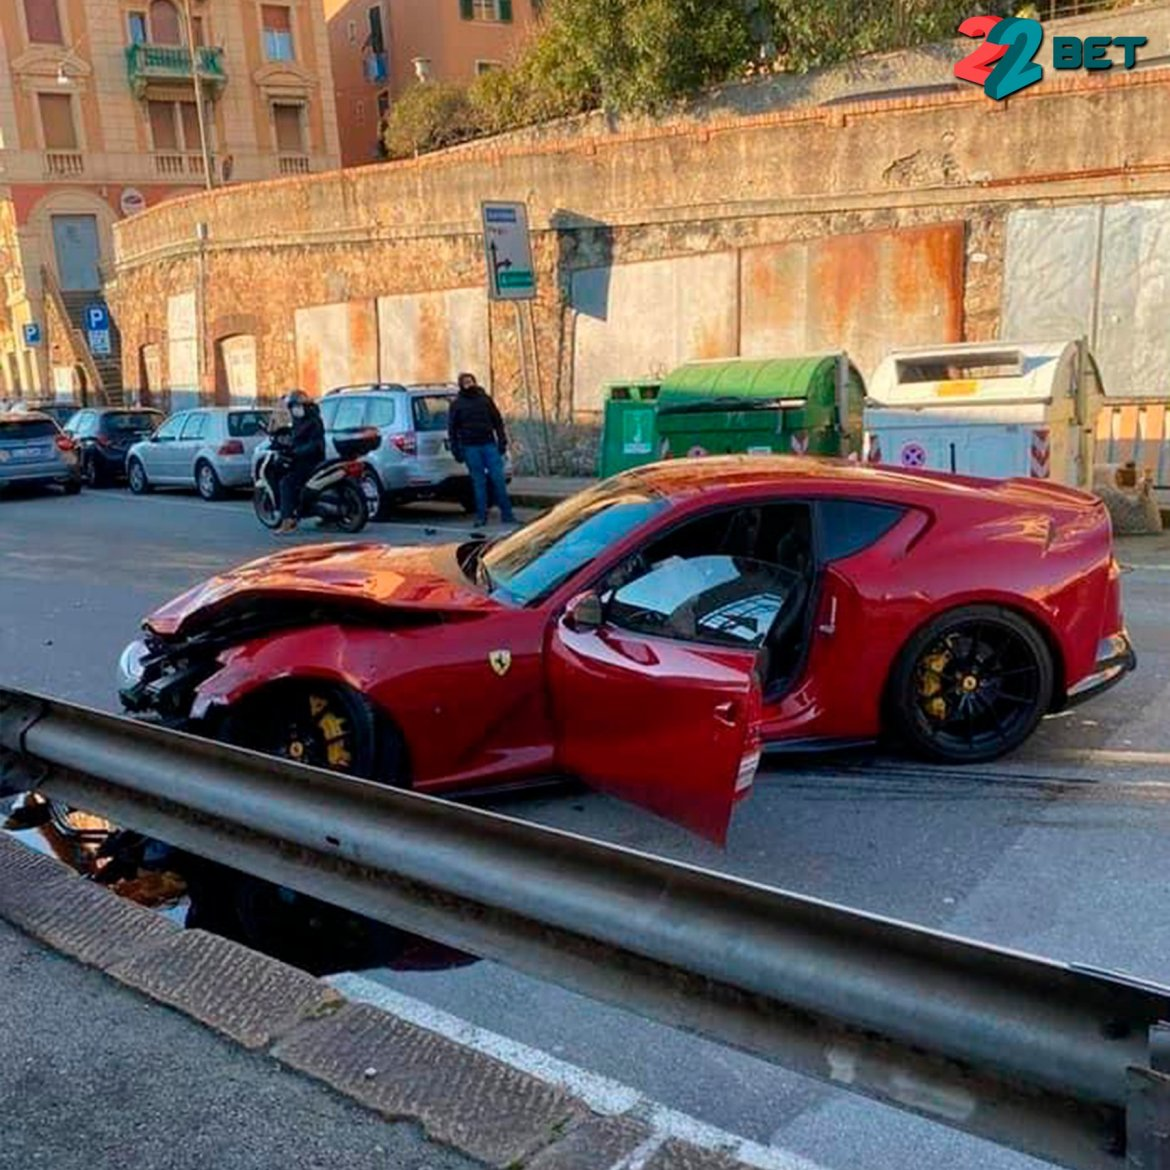 The Ferrari 812 Superfast was left a mangled wreck after the worker crashed it a safety barrier